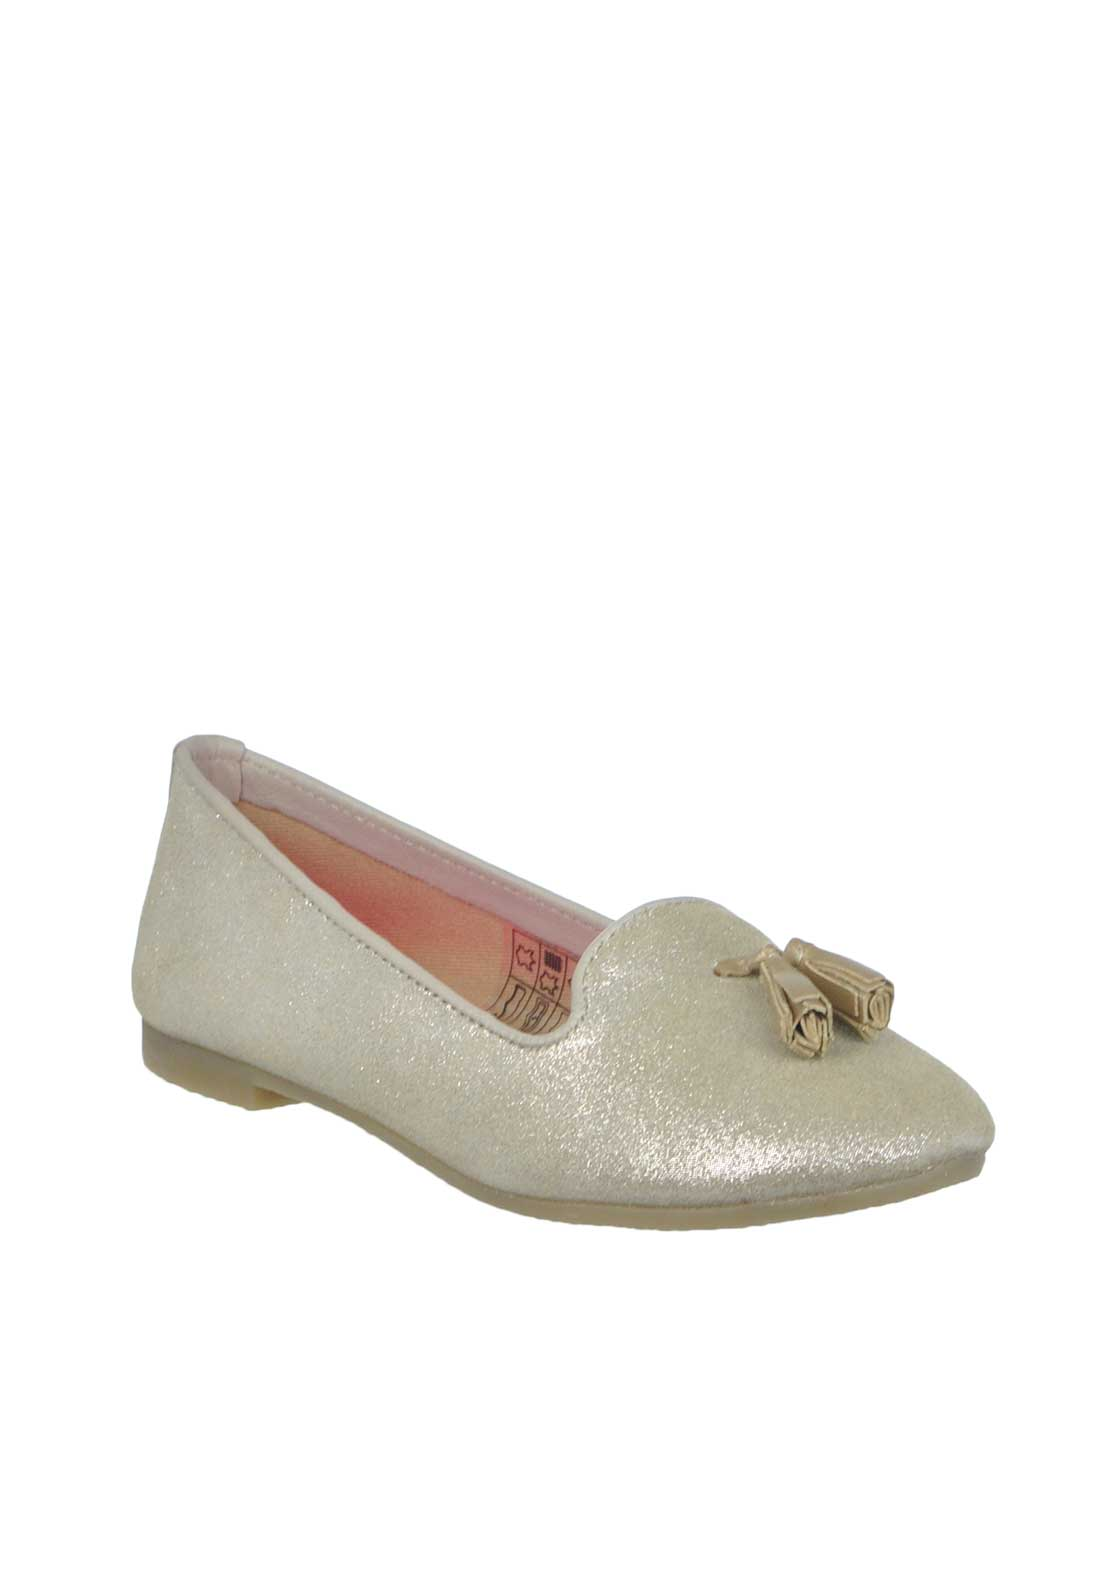 Billieblush Suede Glitter Tassel Slipper Leather Pump, Gold